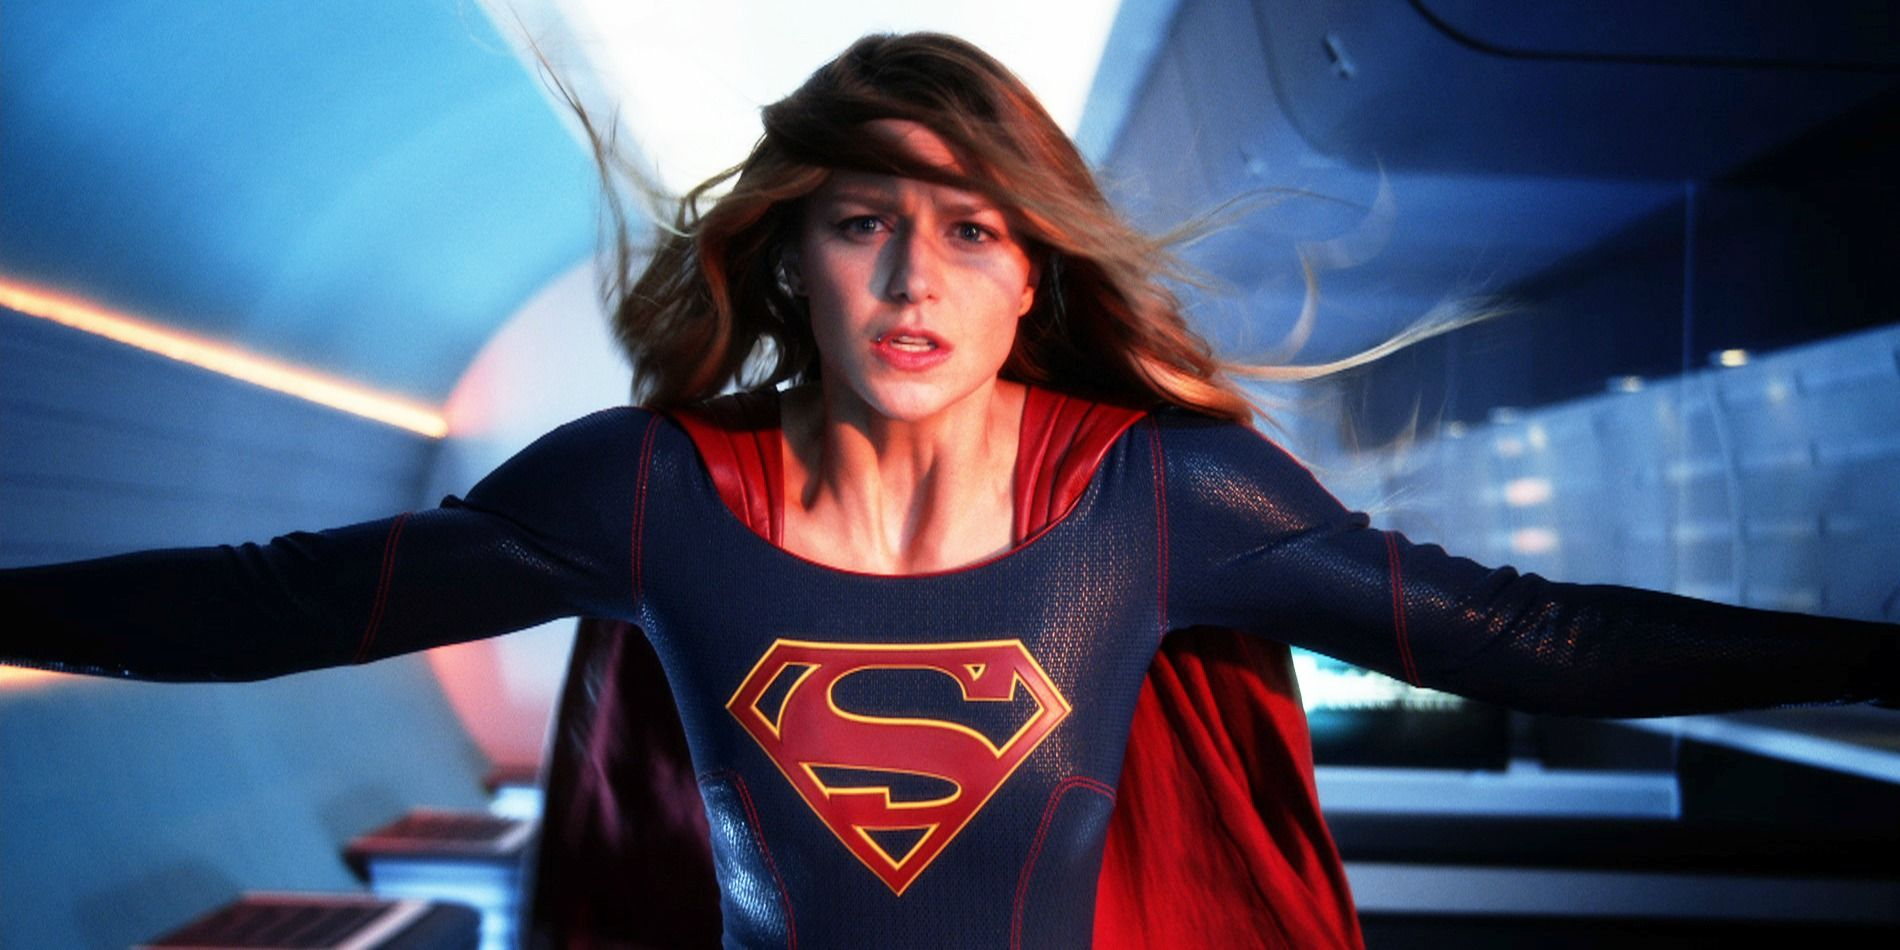 12 Things We Want To See When Supergirl Moves To The CW